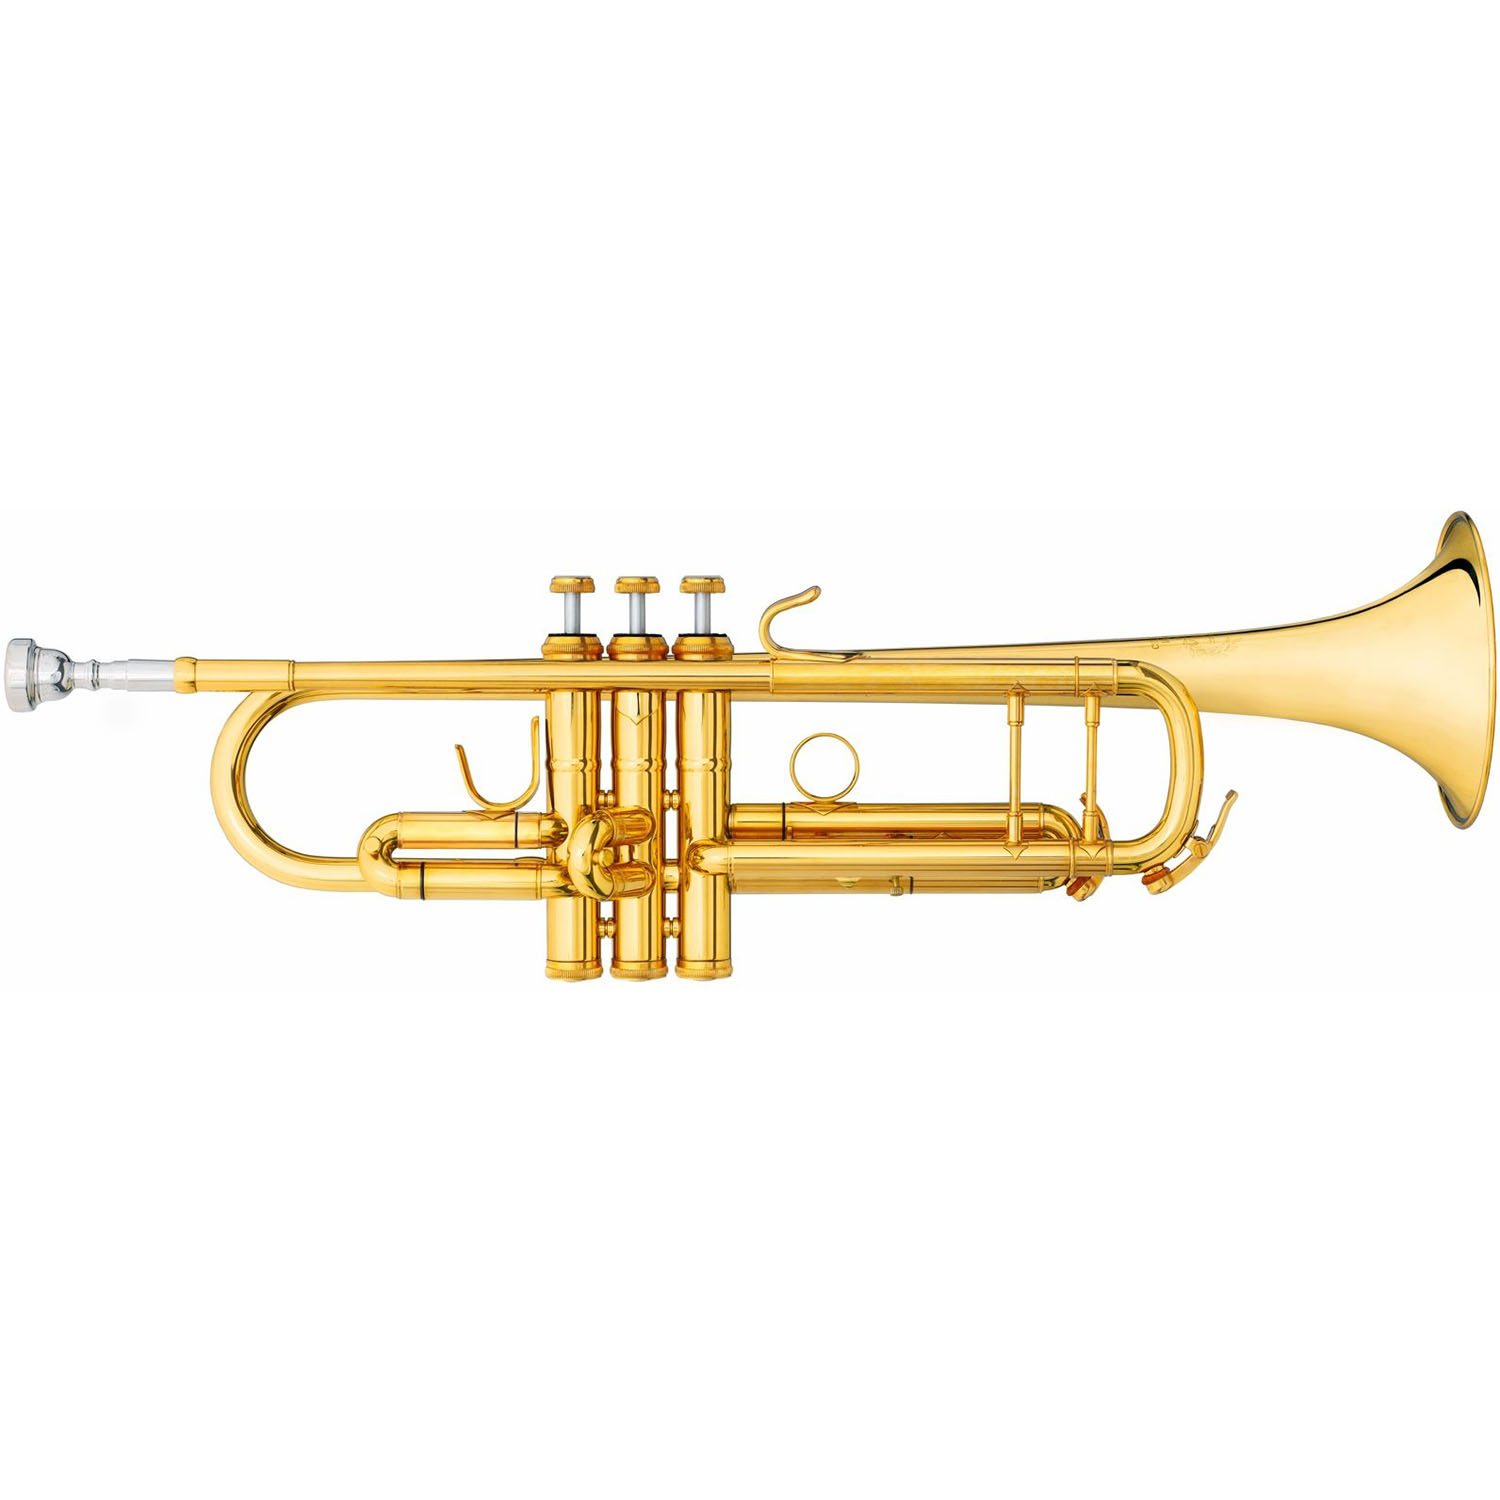 "B&S ""Challenger I"" Professional Bb Trumpet - Dark Gold Lacquer - $100.00 Instant Rebate"